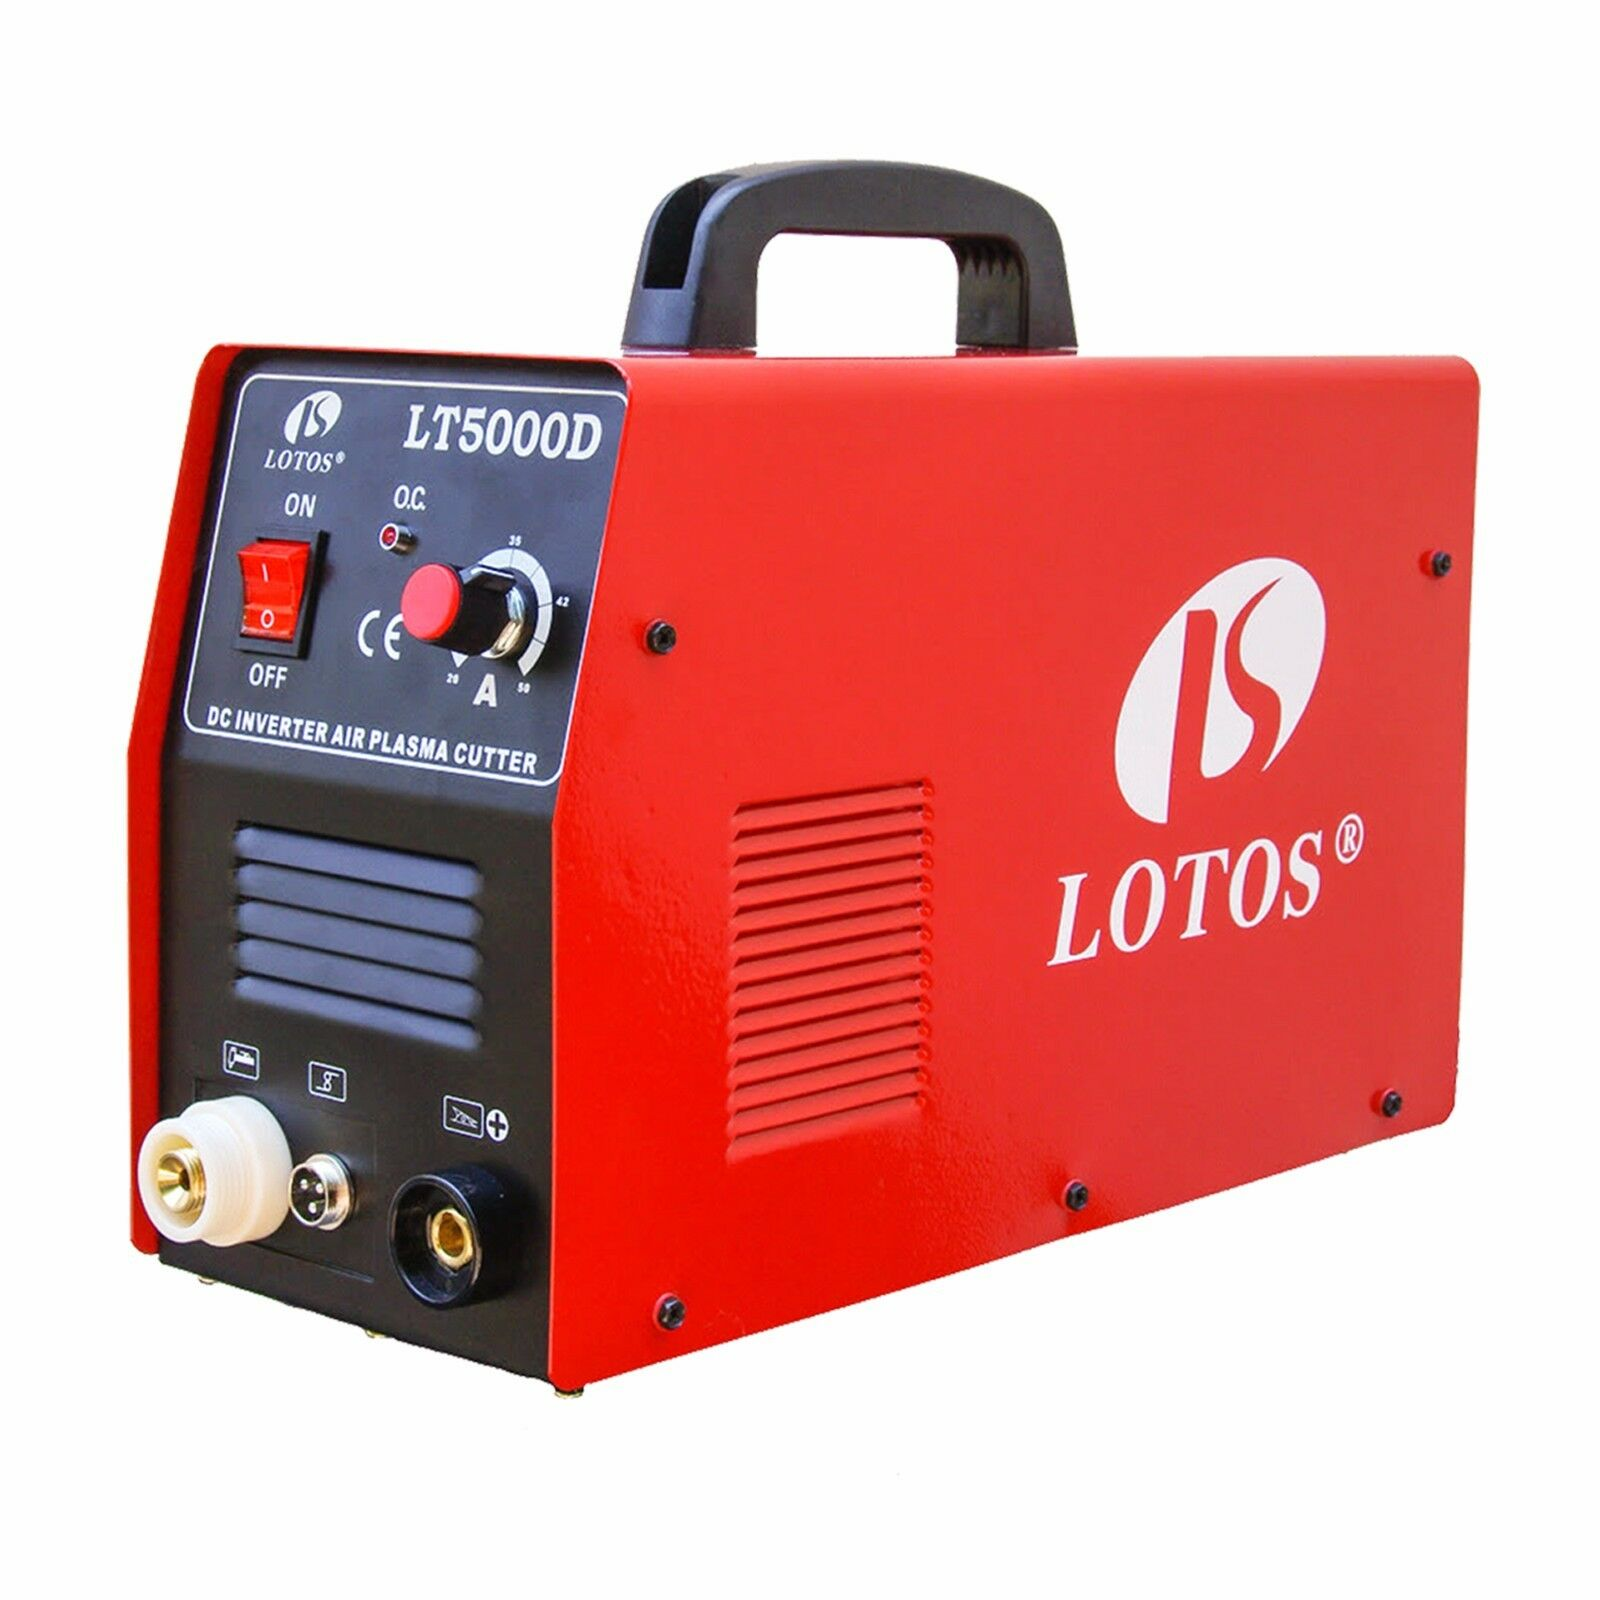 50 amp plasma cutter ebay plasma cutter 50 amp dual voltage compact metal cutter lotos lt5000d clean cut pooptronica Image collections